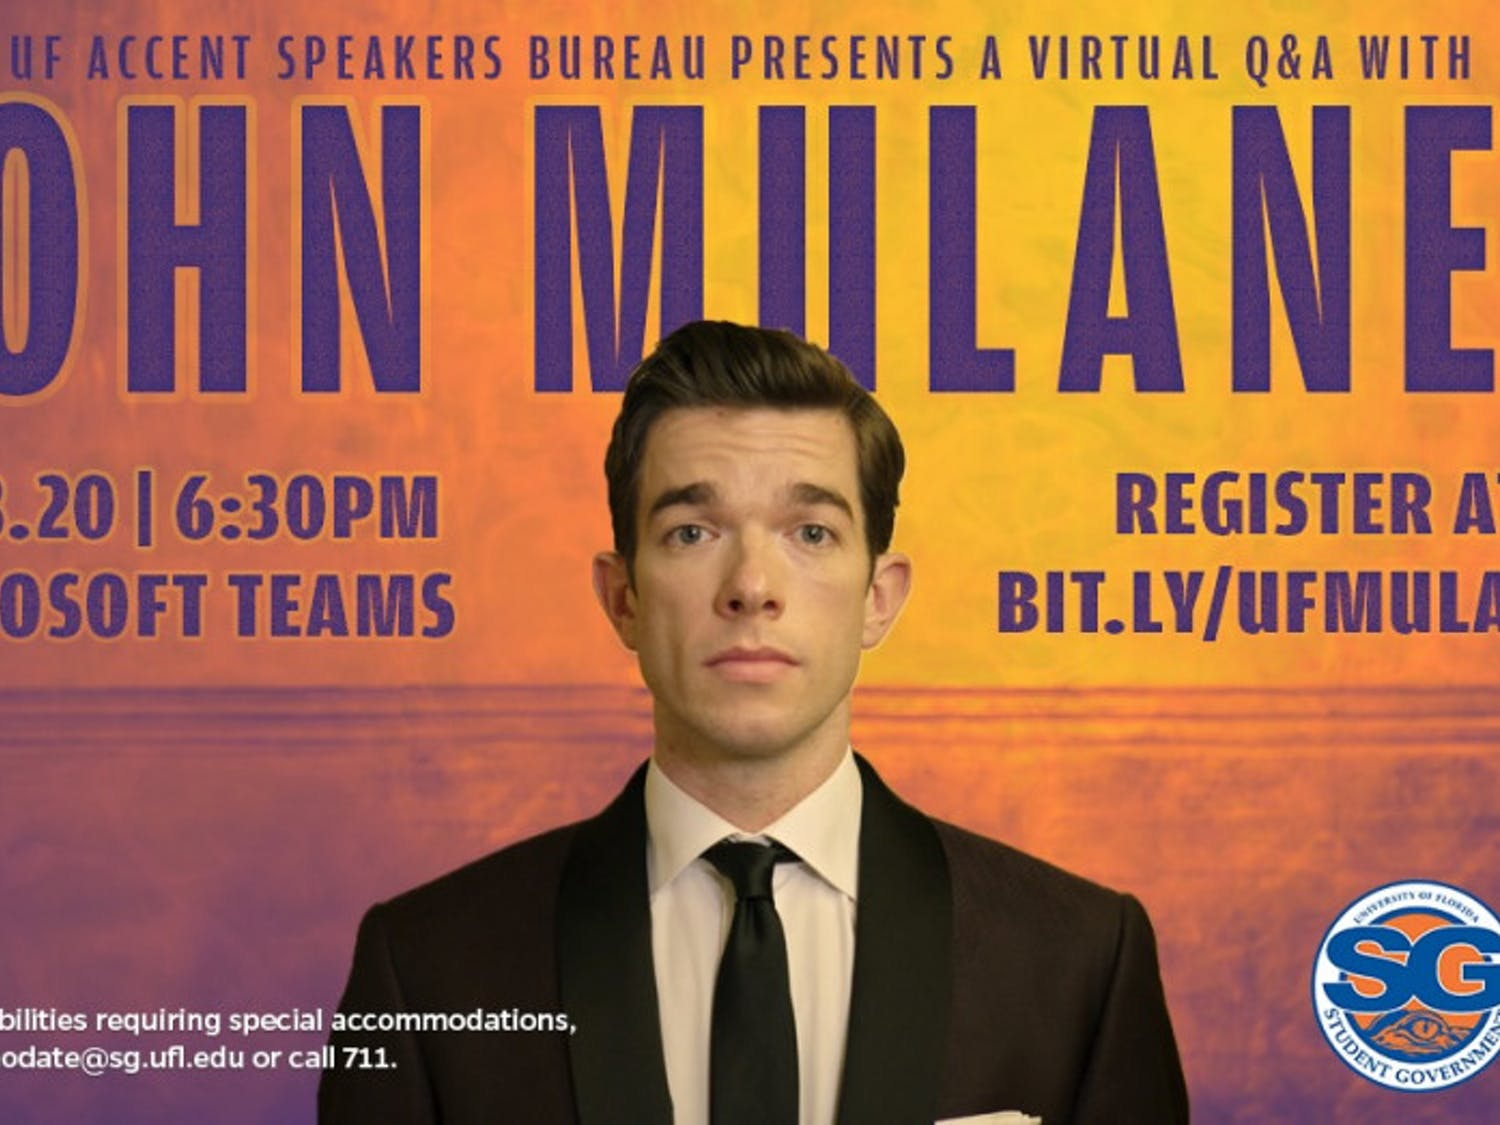 Mulaney shared behind-the-scenes stories about the start of his career, his time at Saturday Night Live and his stand-up specials during Thursday's event.